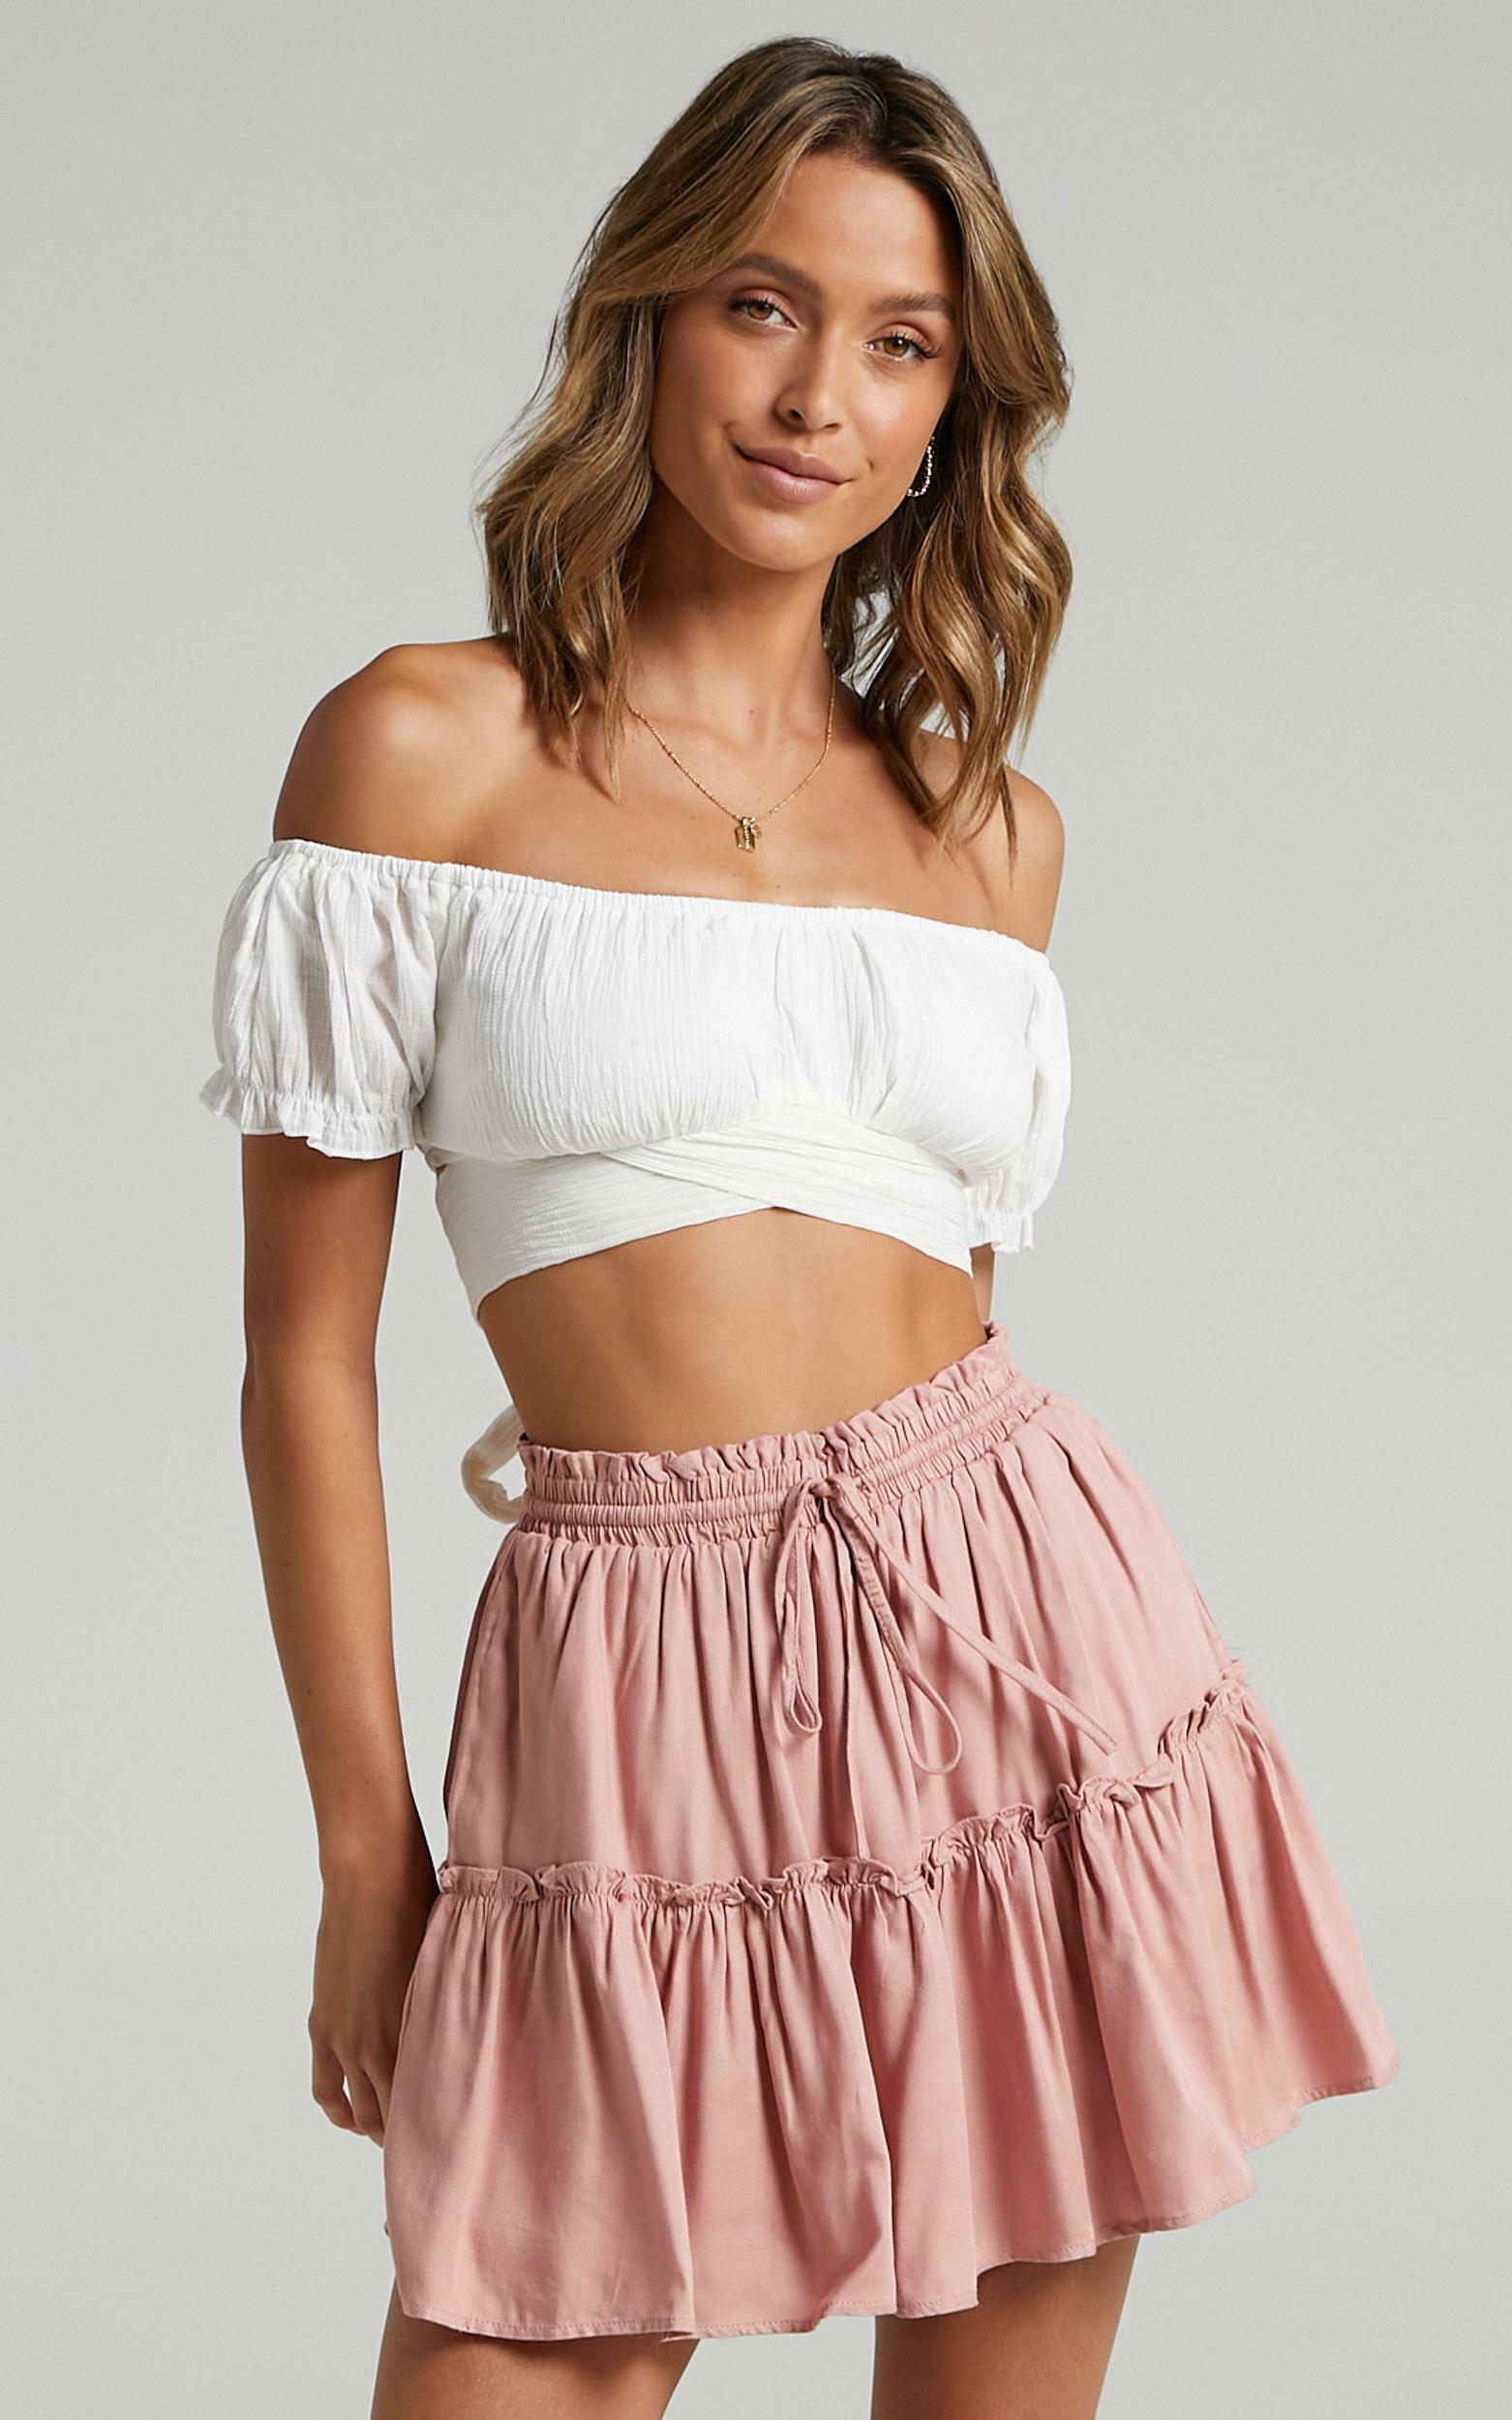 Final Promise Skirt in Blush - 14, PNK1, hi-res image number null